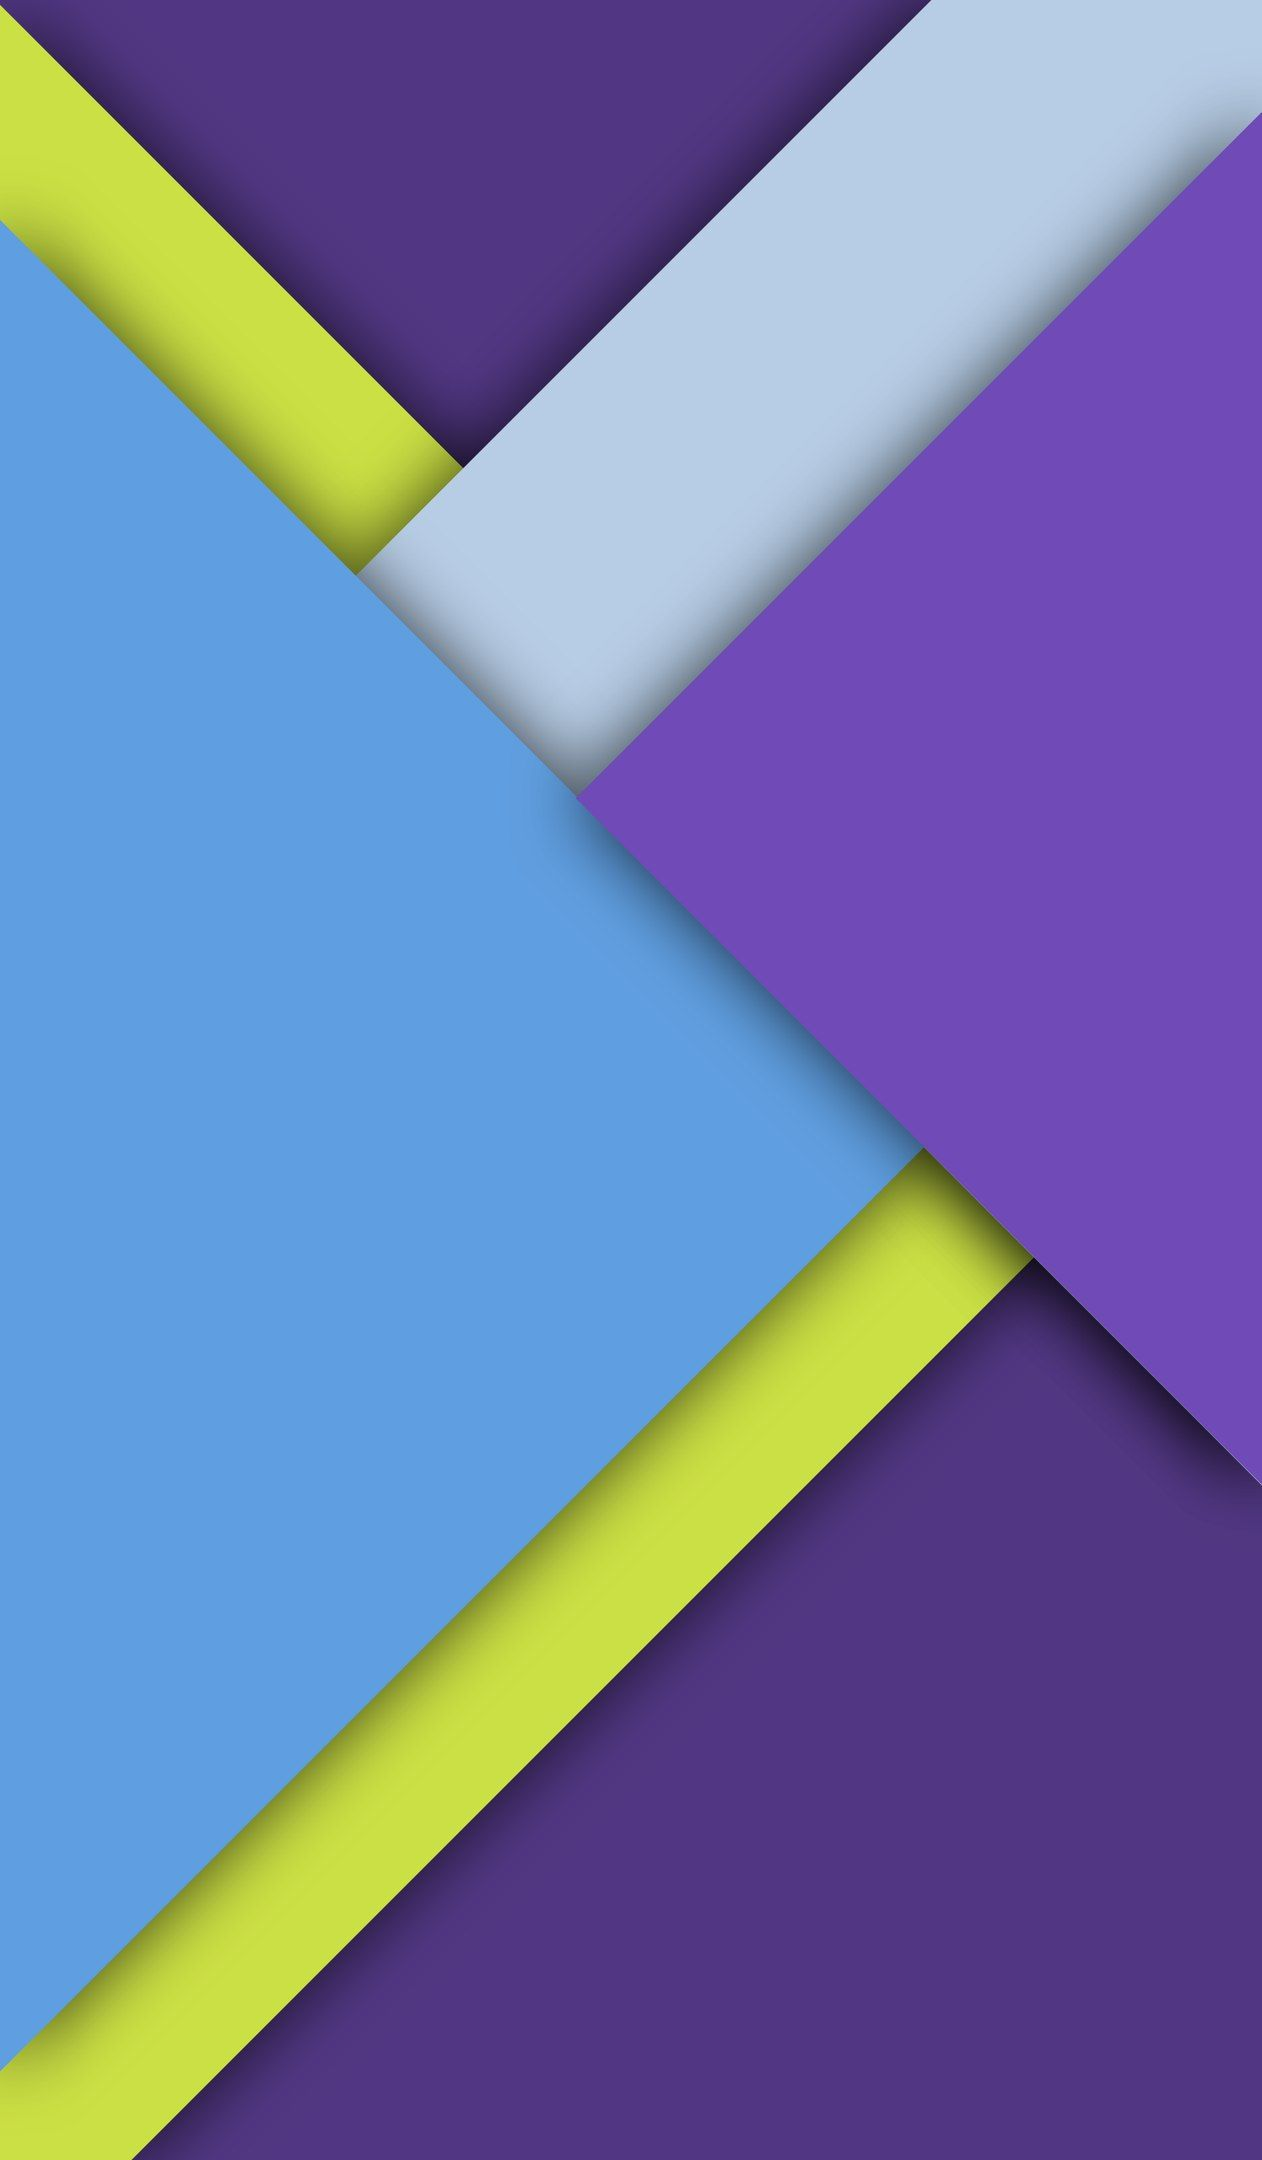 material design wallpaper phone wallpapersmaterial designiosphotoshop androidwallpaper